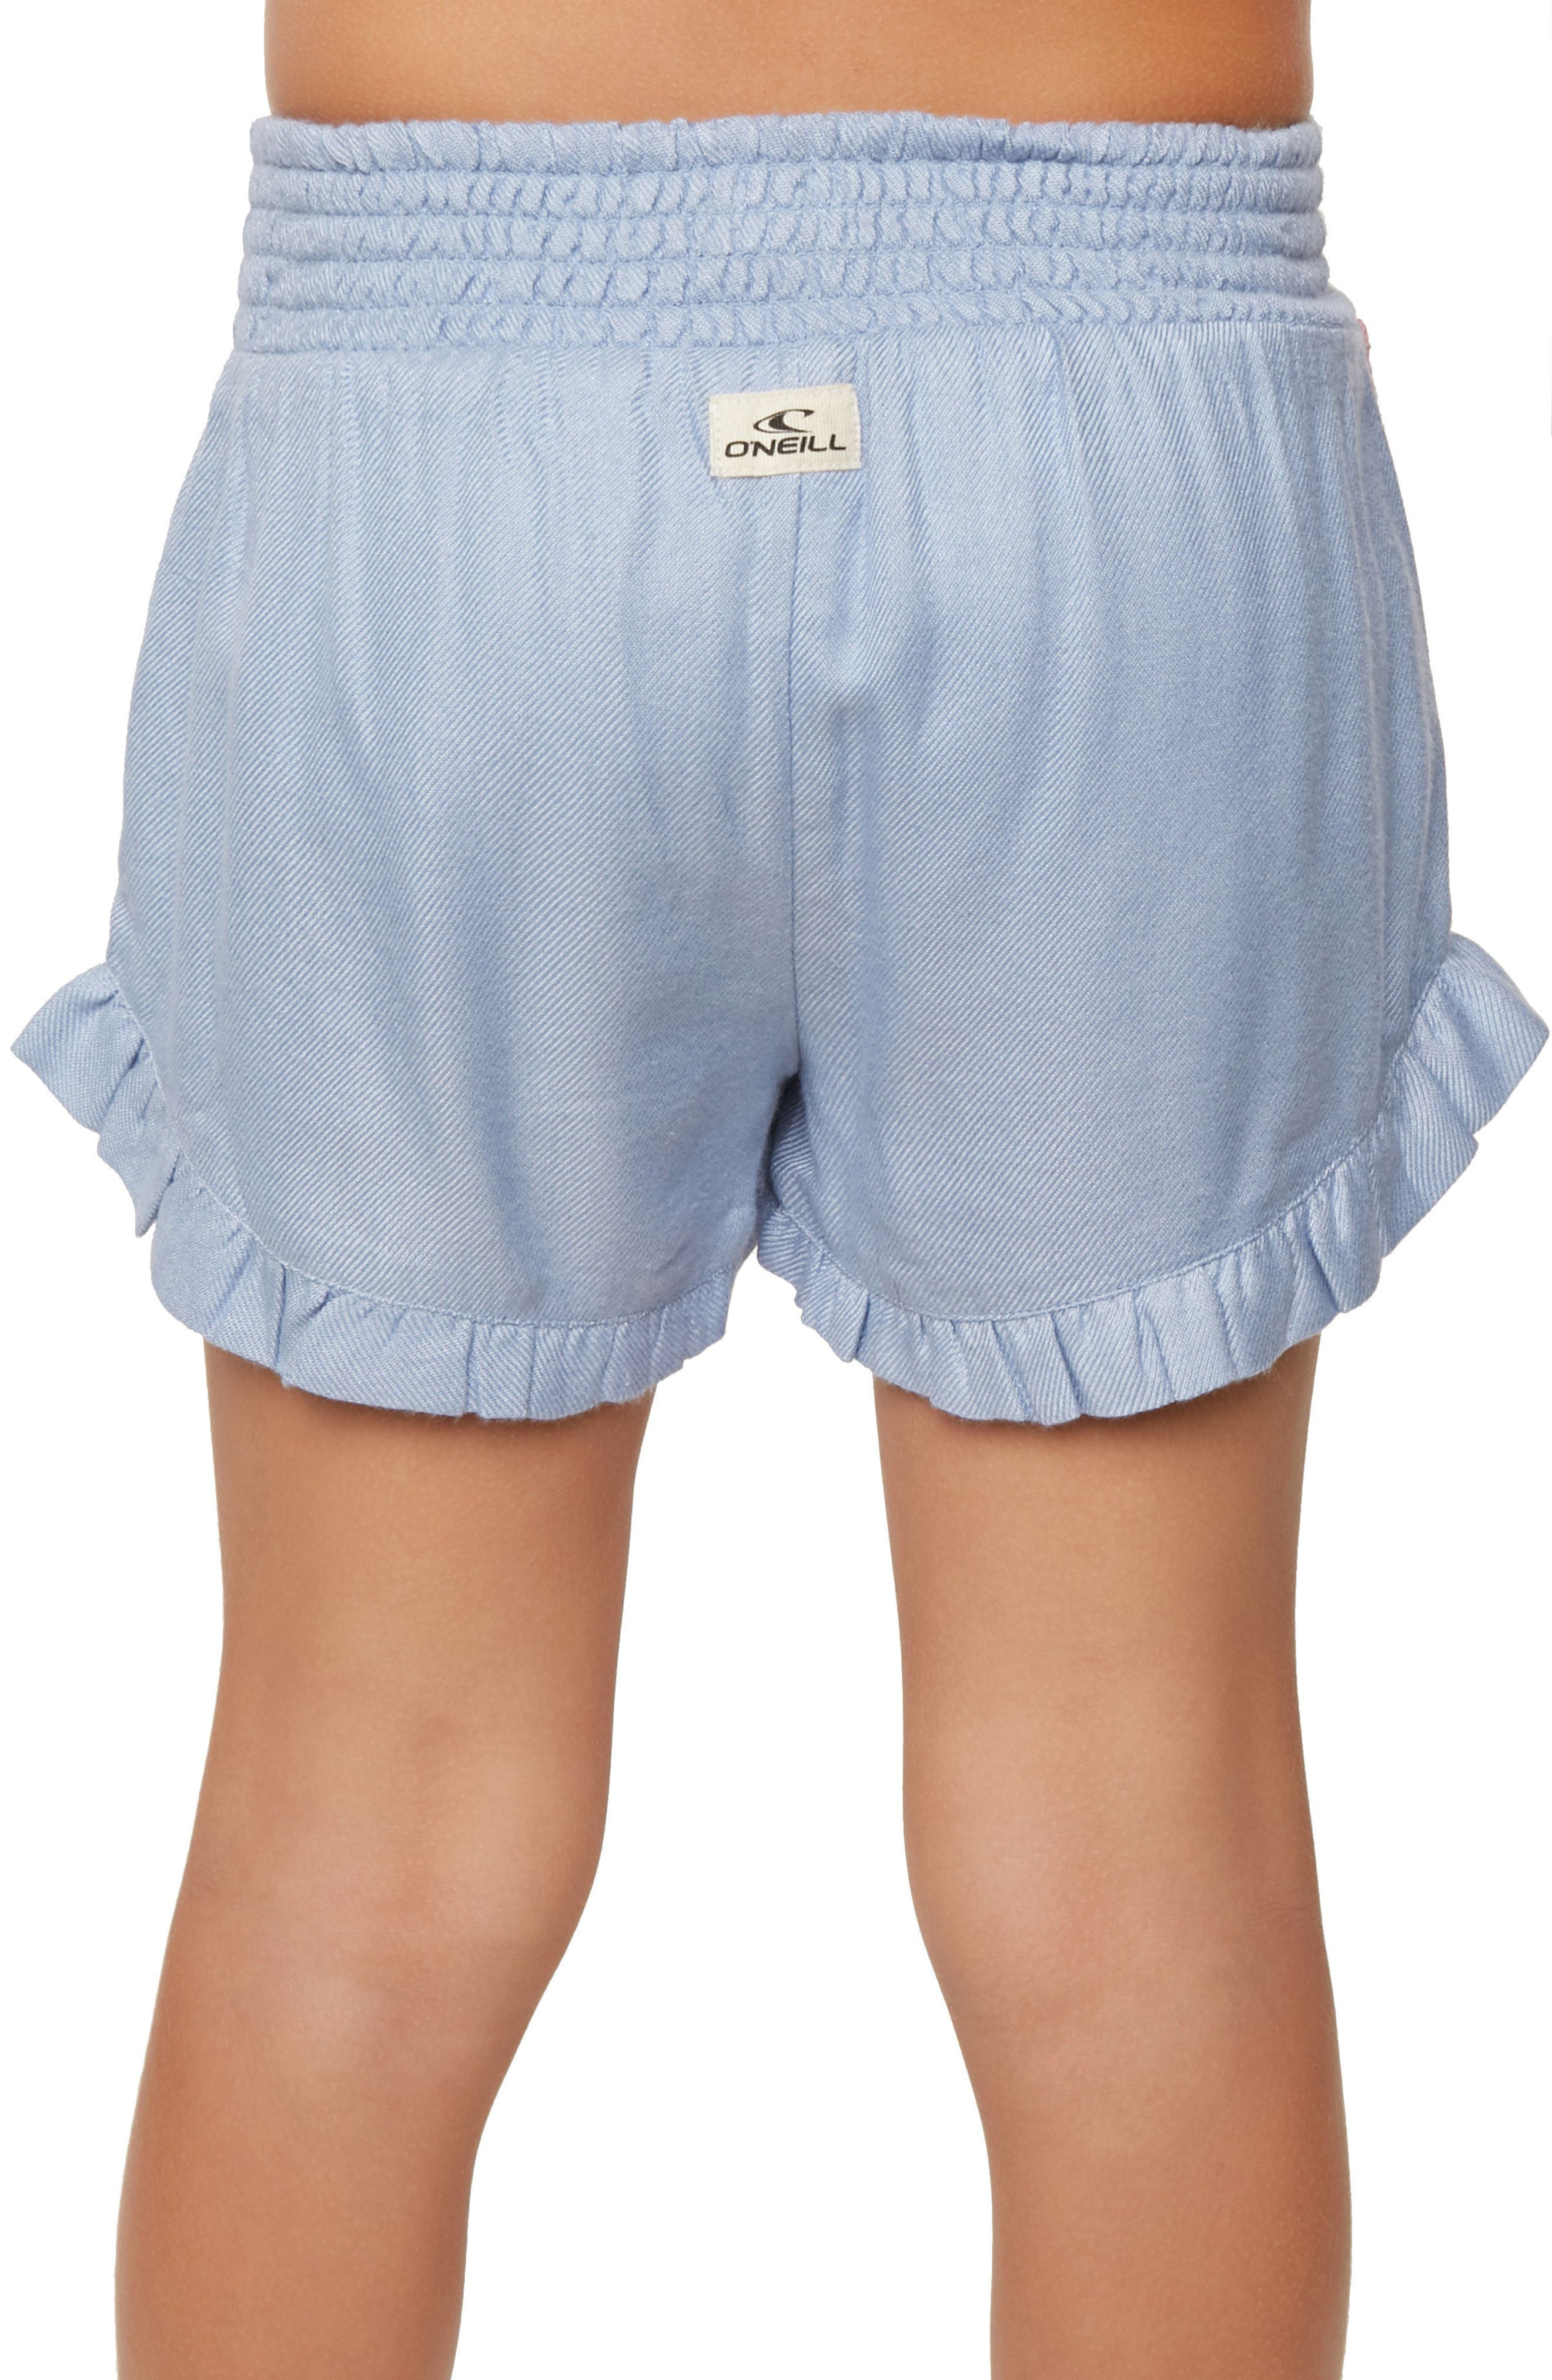 O'NEILL,                             Bay Ruffle Shorts,                             Alternate thumbnail 4, color,                             400